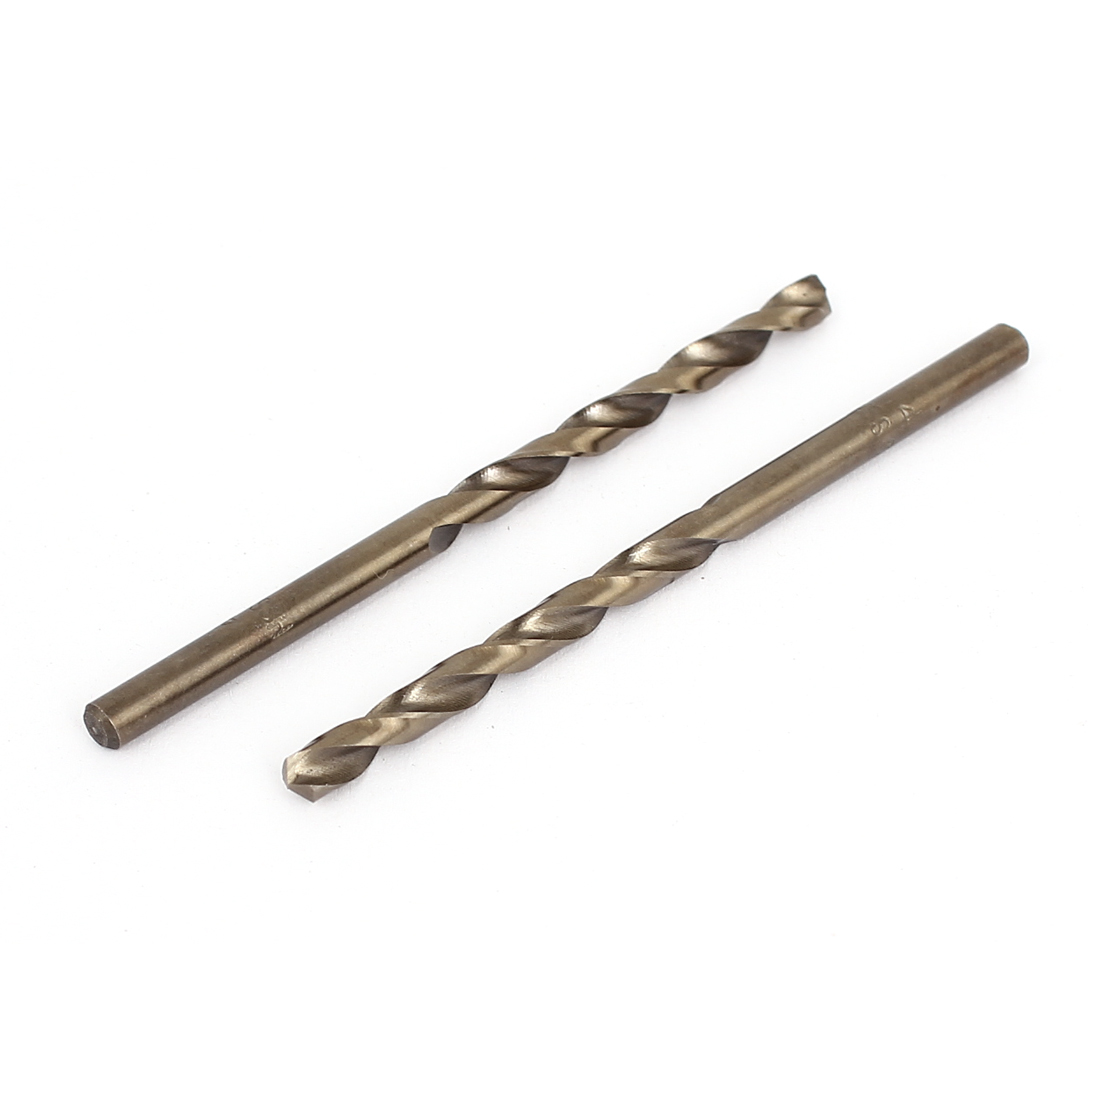 Stainless Steel Straight Round Shank 4.0mm Diameter Drilling Twist Drill Bit 2pcs